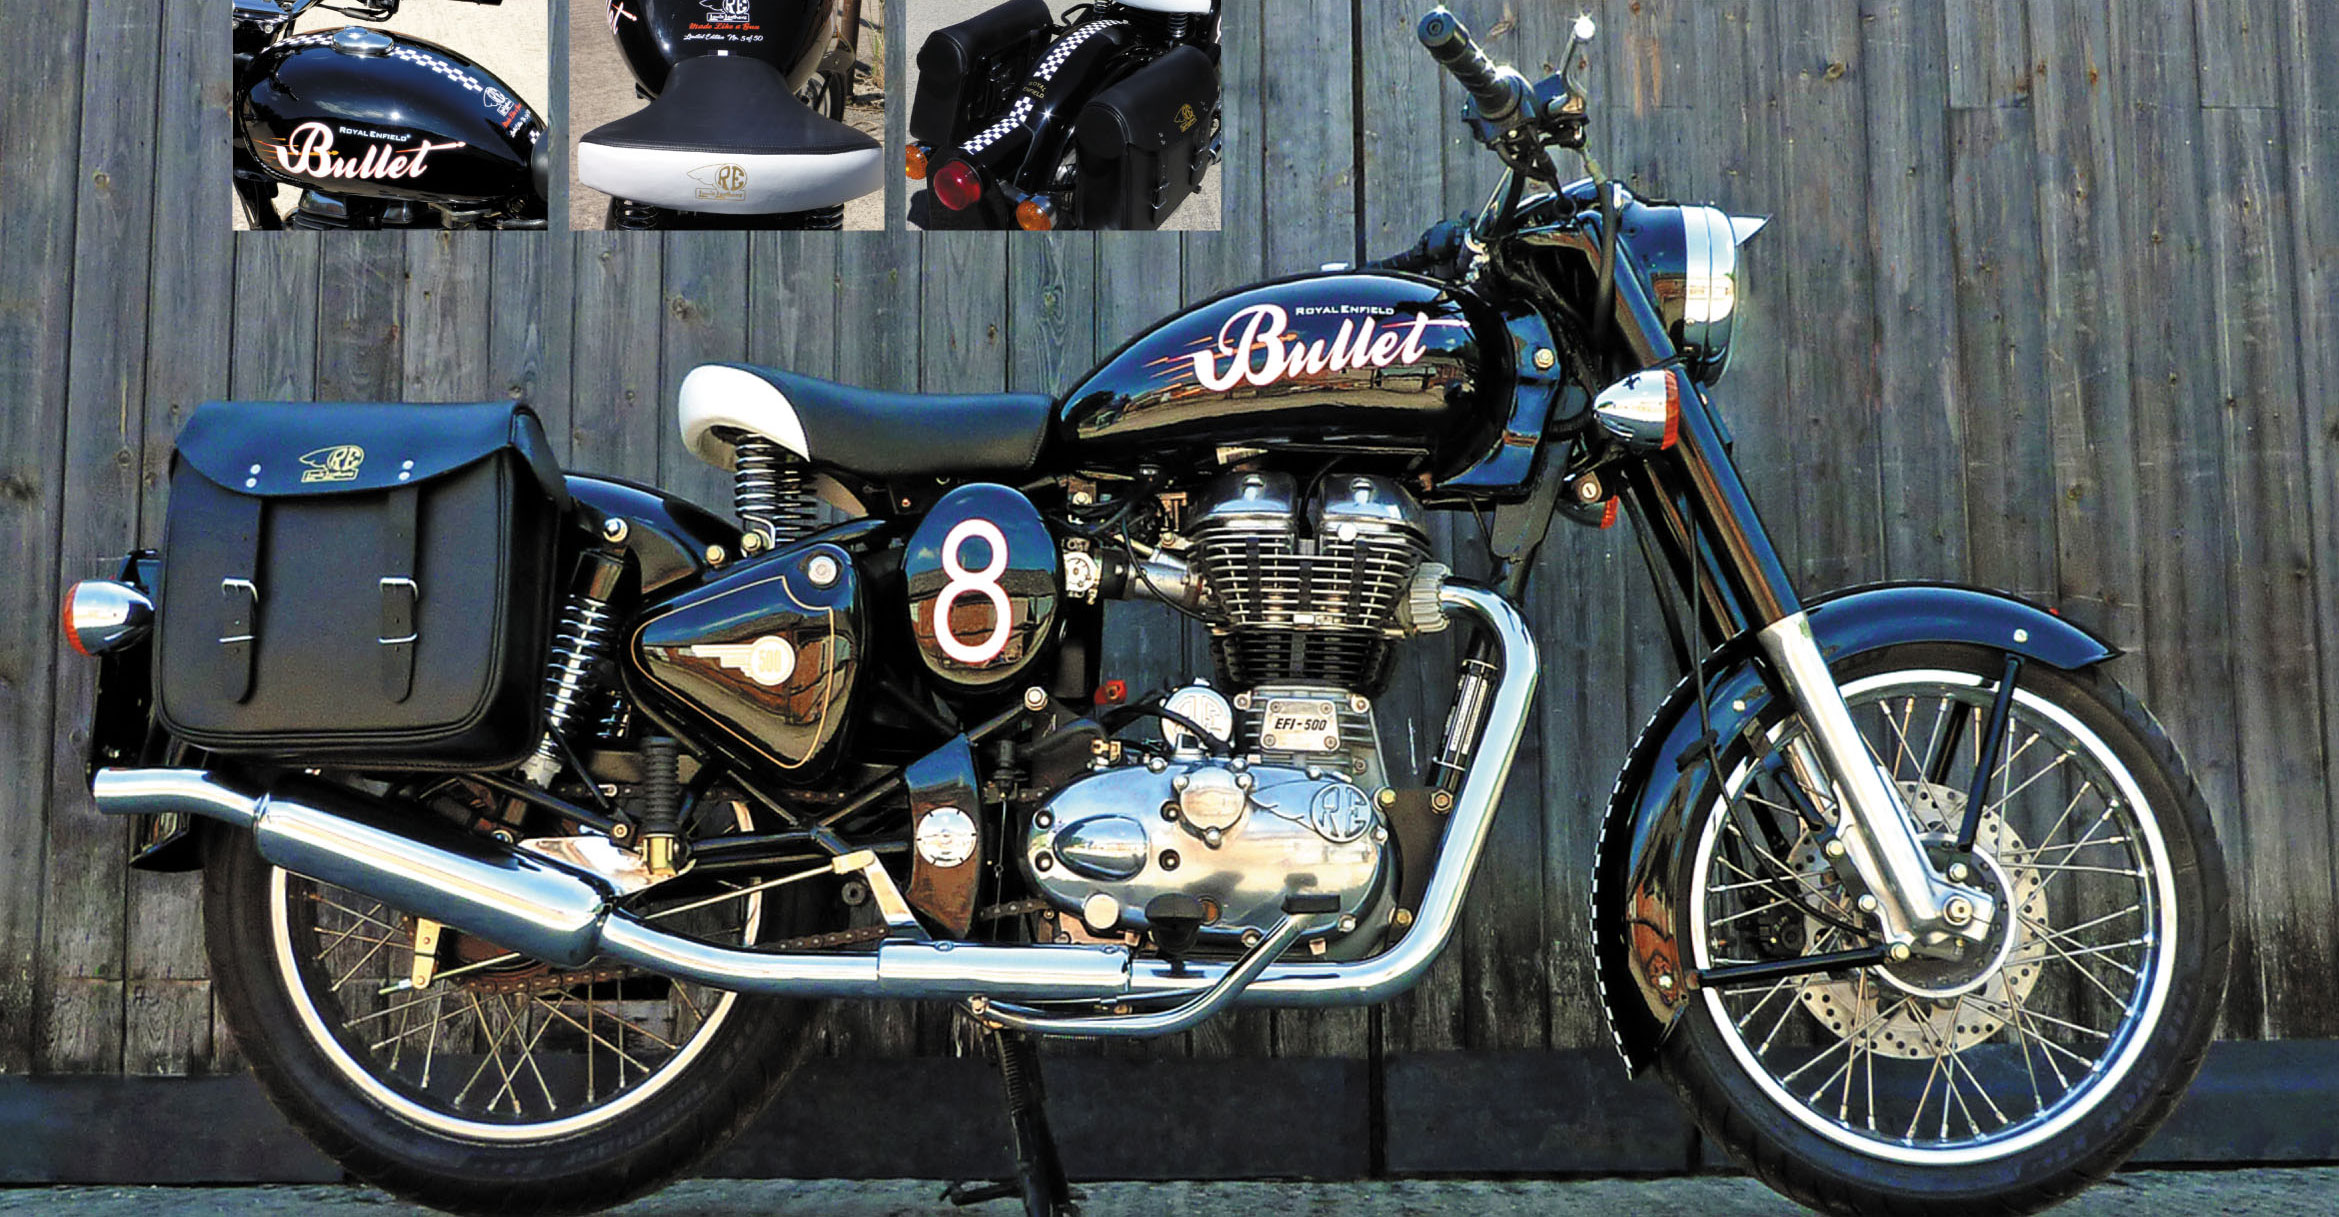 Royal Enfield Bullet C5 Classic EFI 2010 images #127529